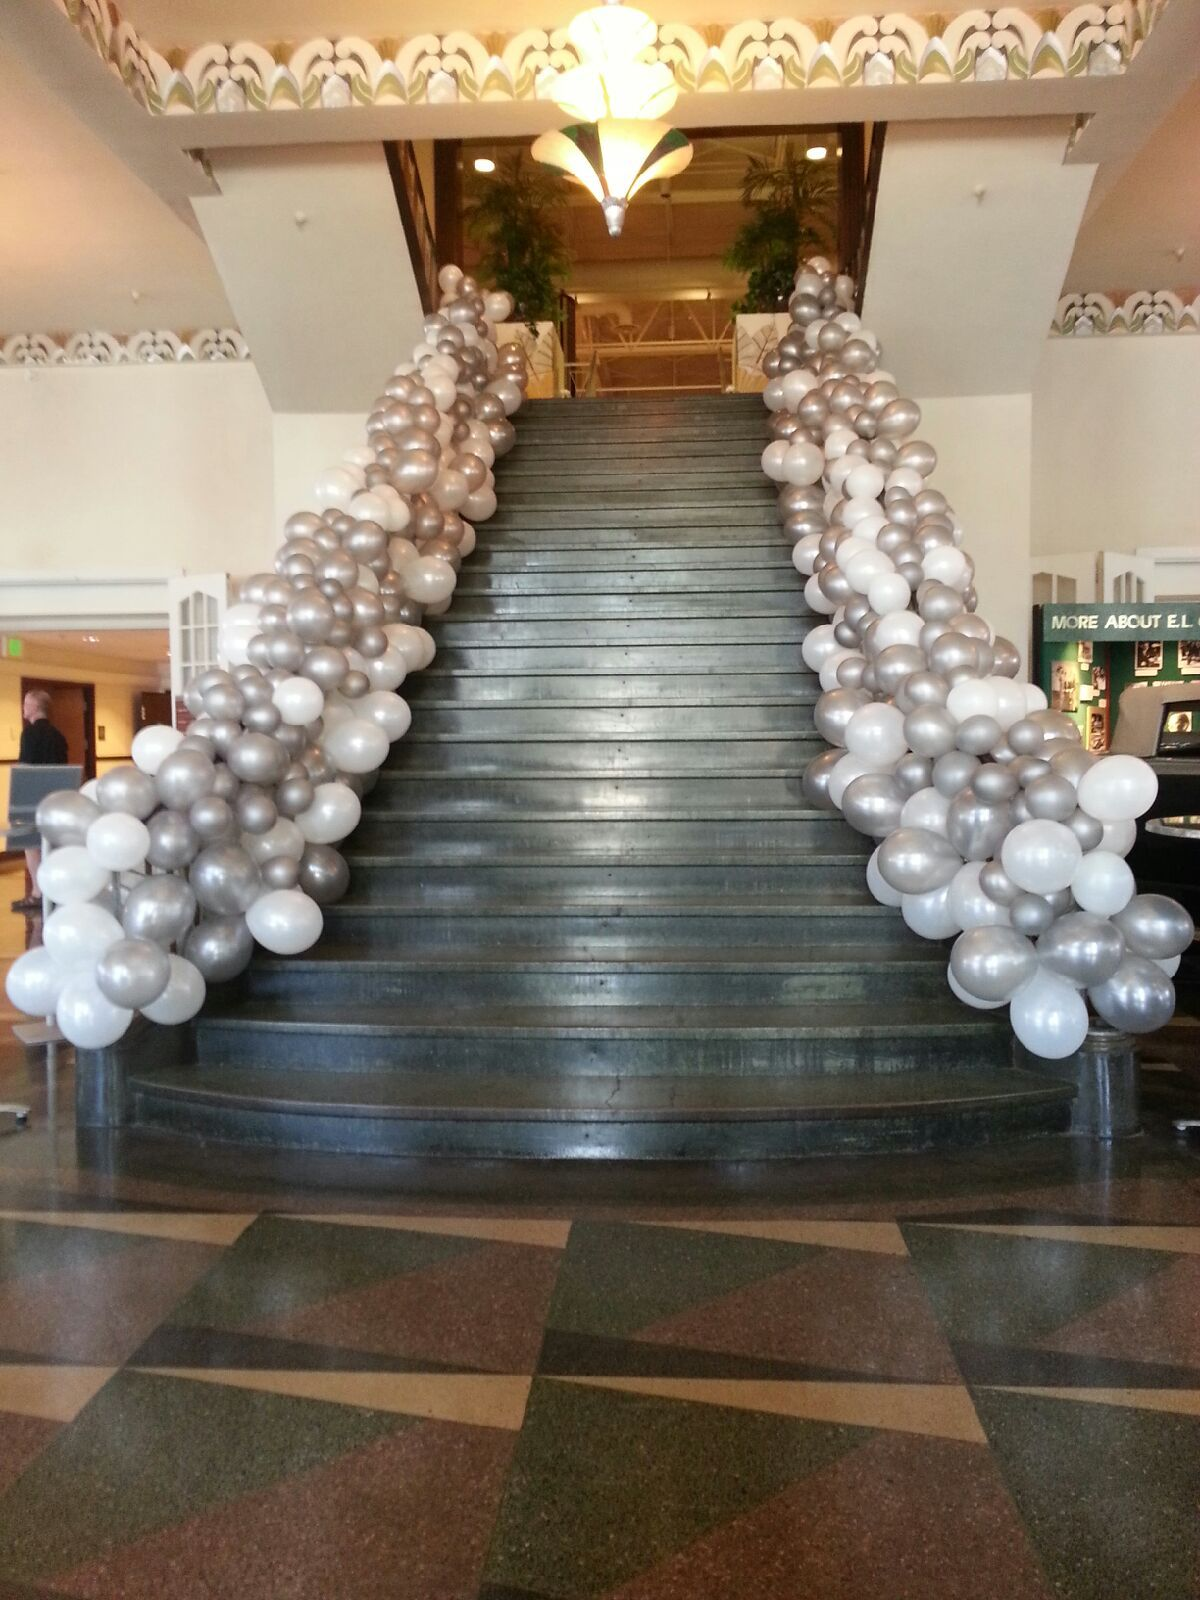 Art deco backdrop for photos wall decor party decoration 1920 s - Stair Way Treatment With White And Silver Balloons Great Gaspy Gala 2013